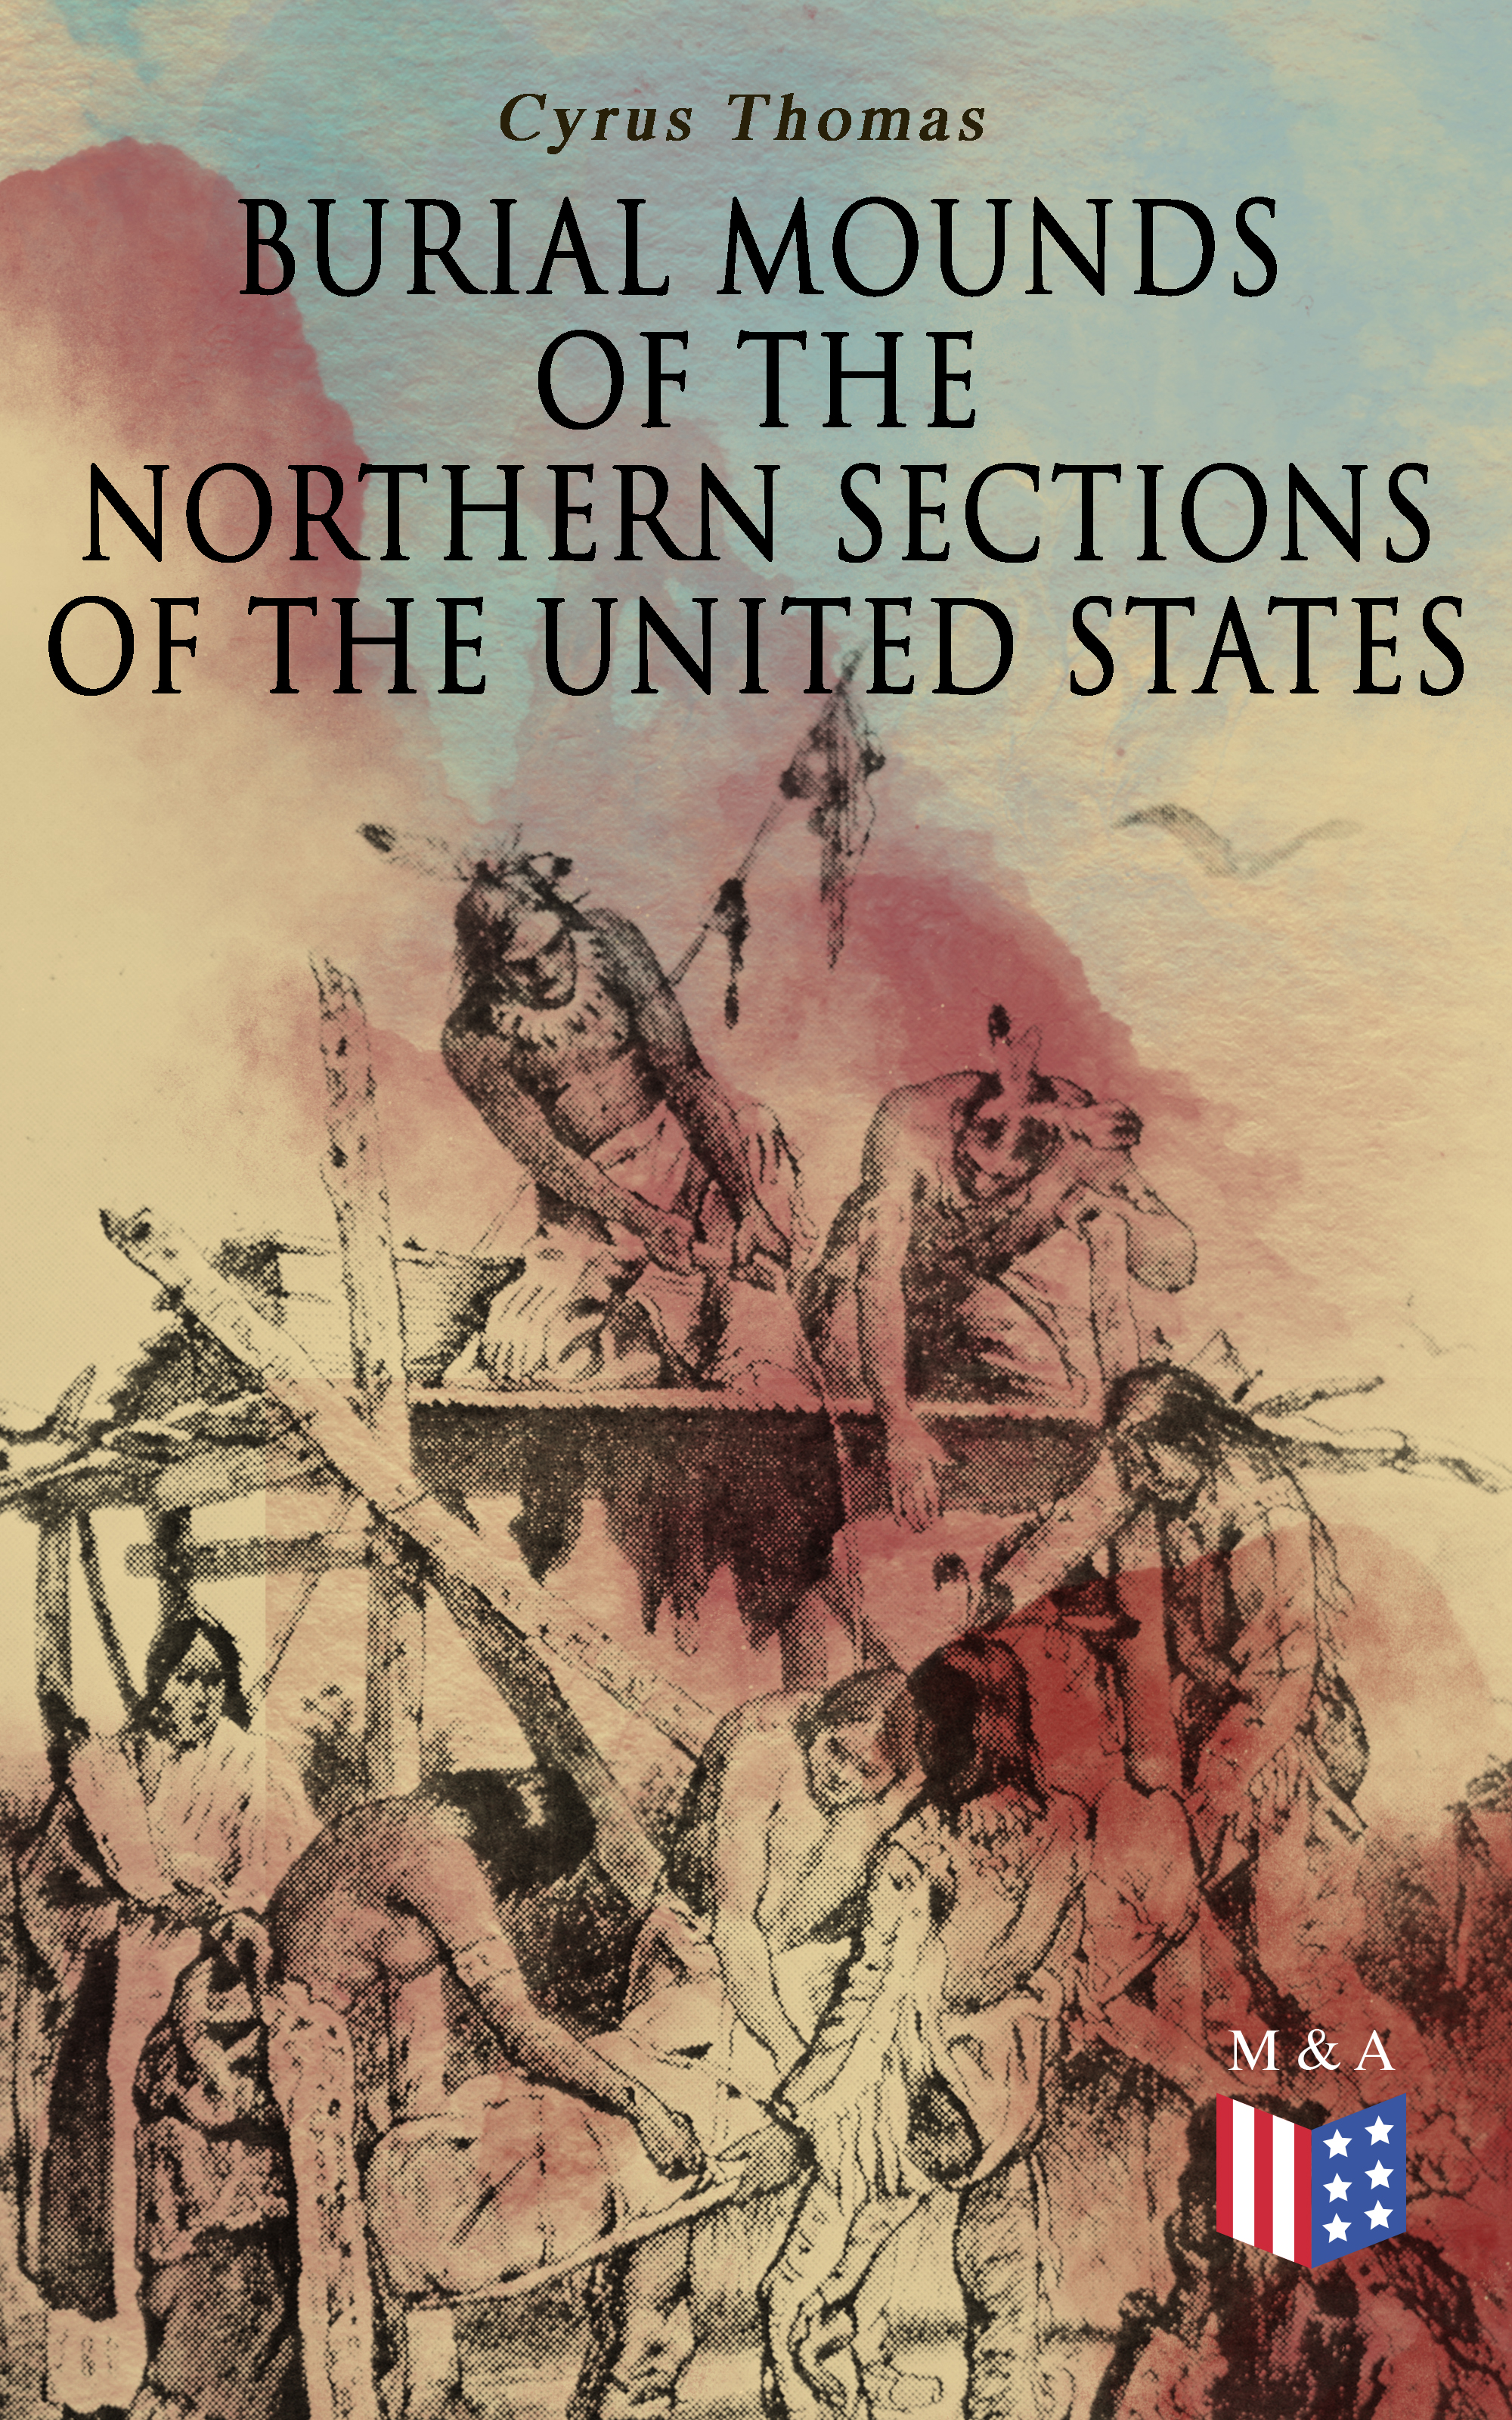 Cyrus Thomas Burial Mounds of the Northern Sections of the United States d s jordan a manual of the vertebrate animals of the northern united states